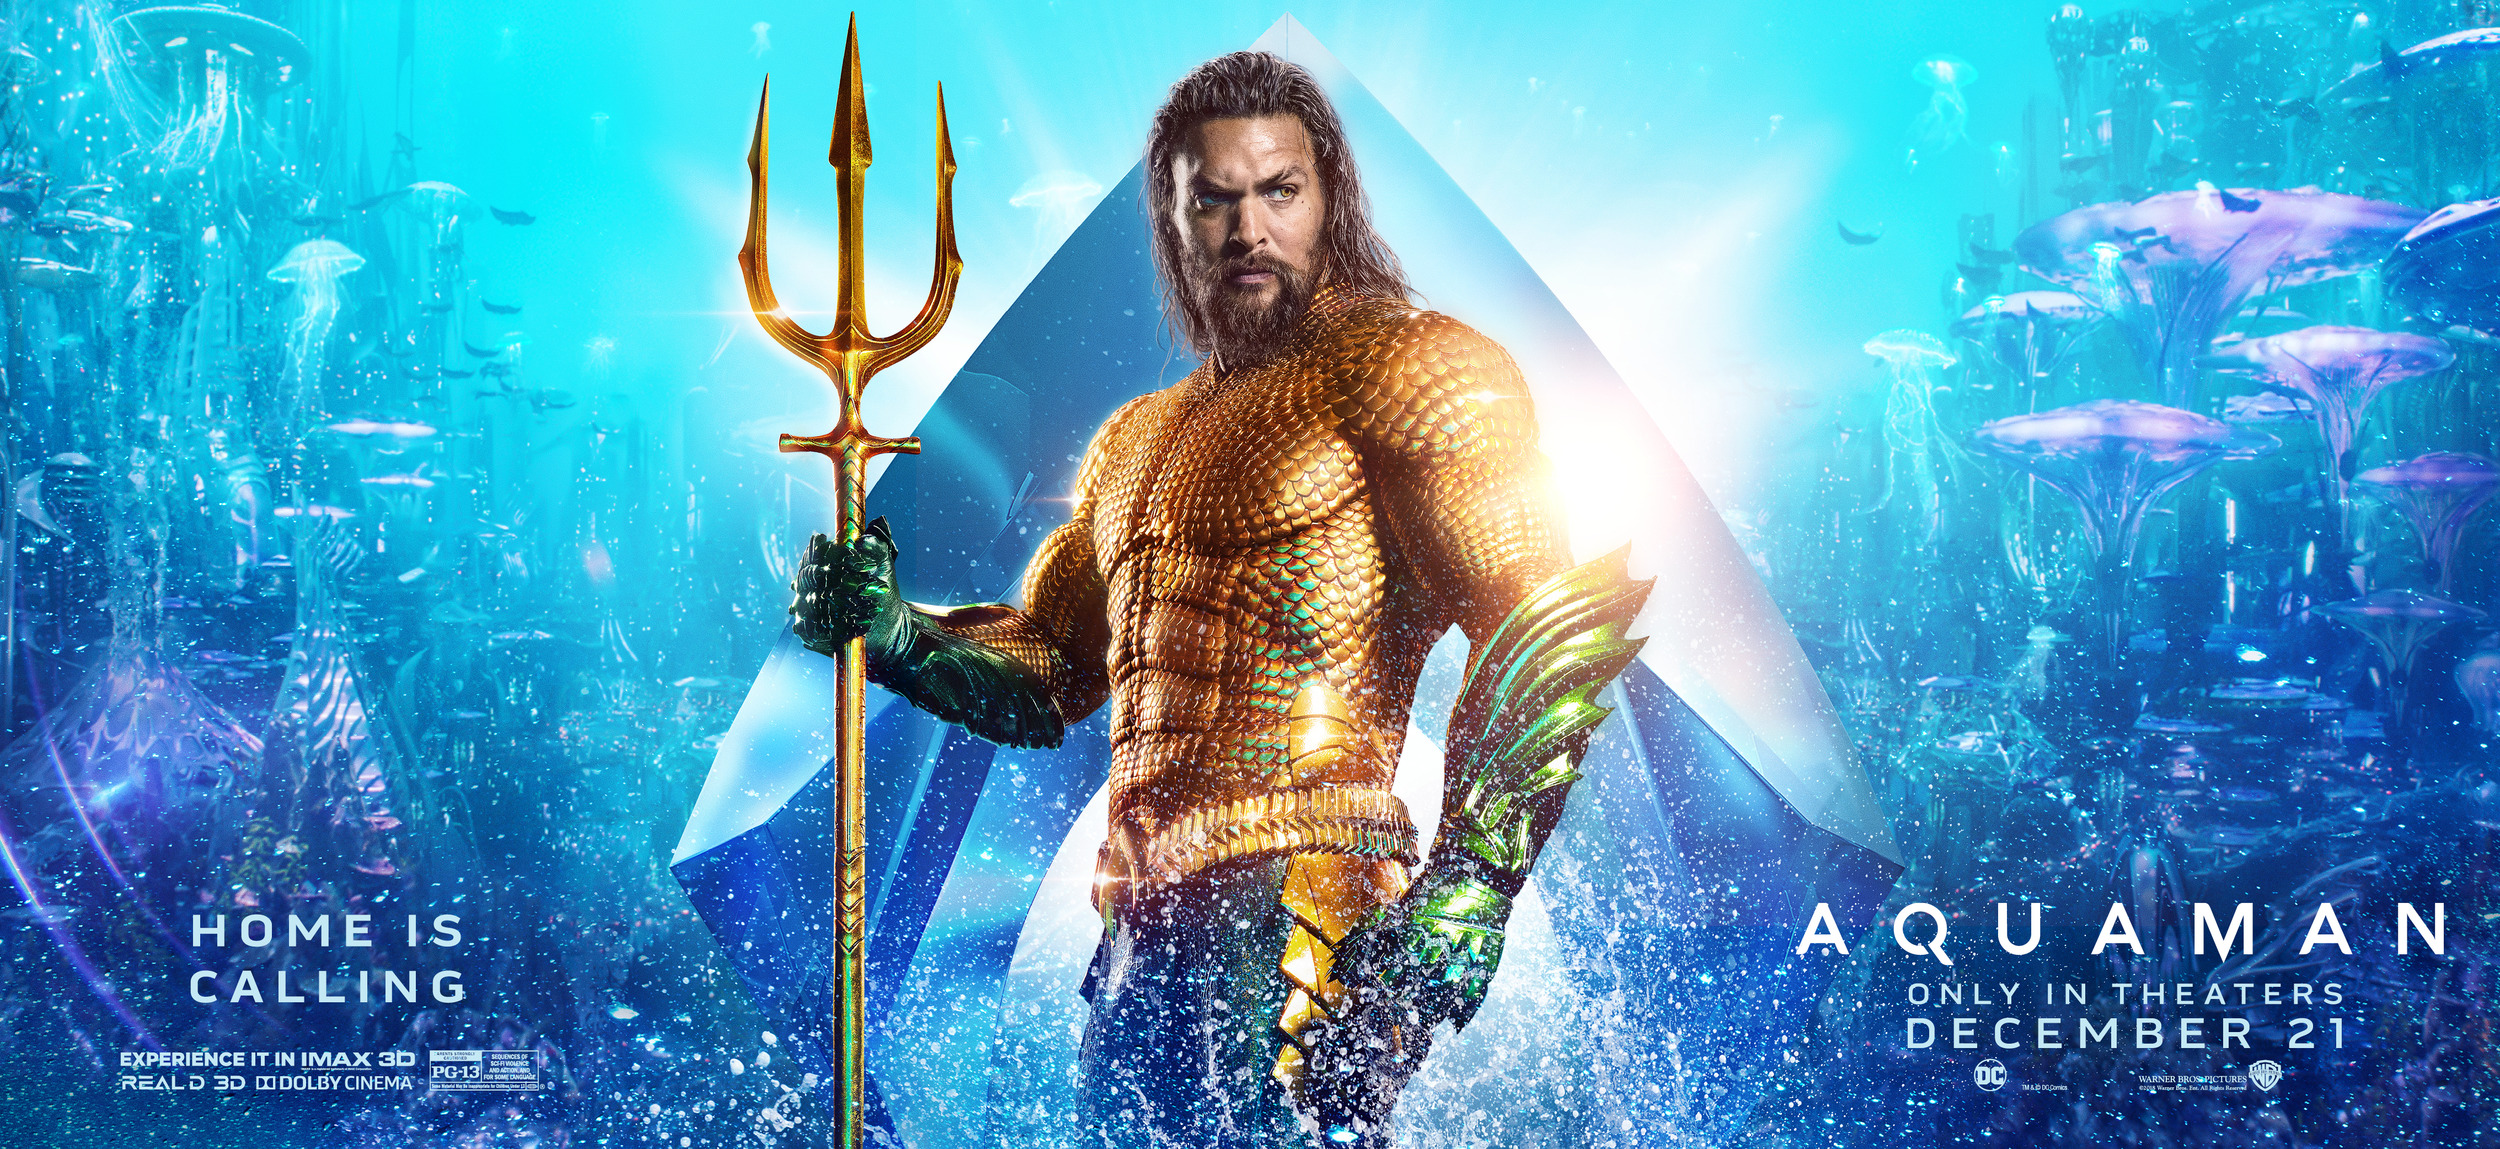 It's Aquaman 2 vs Star Wars in December 2022 | Batman News